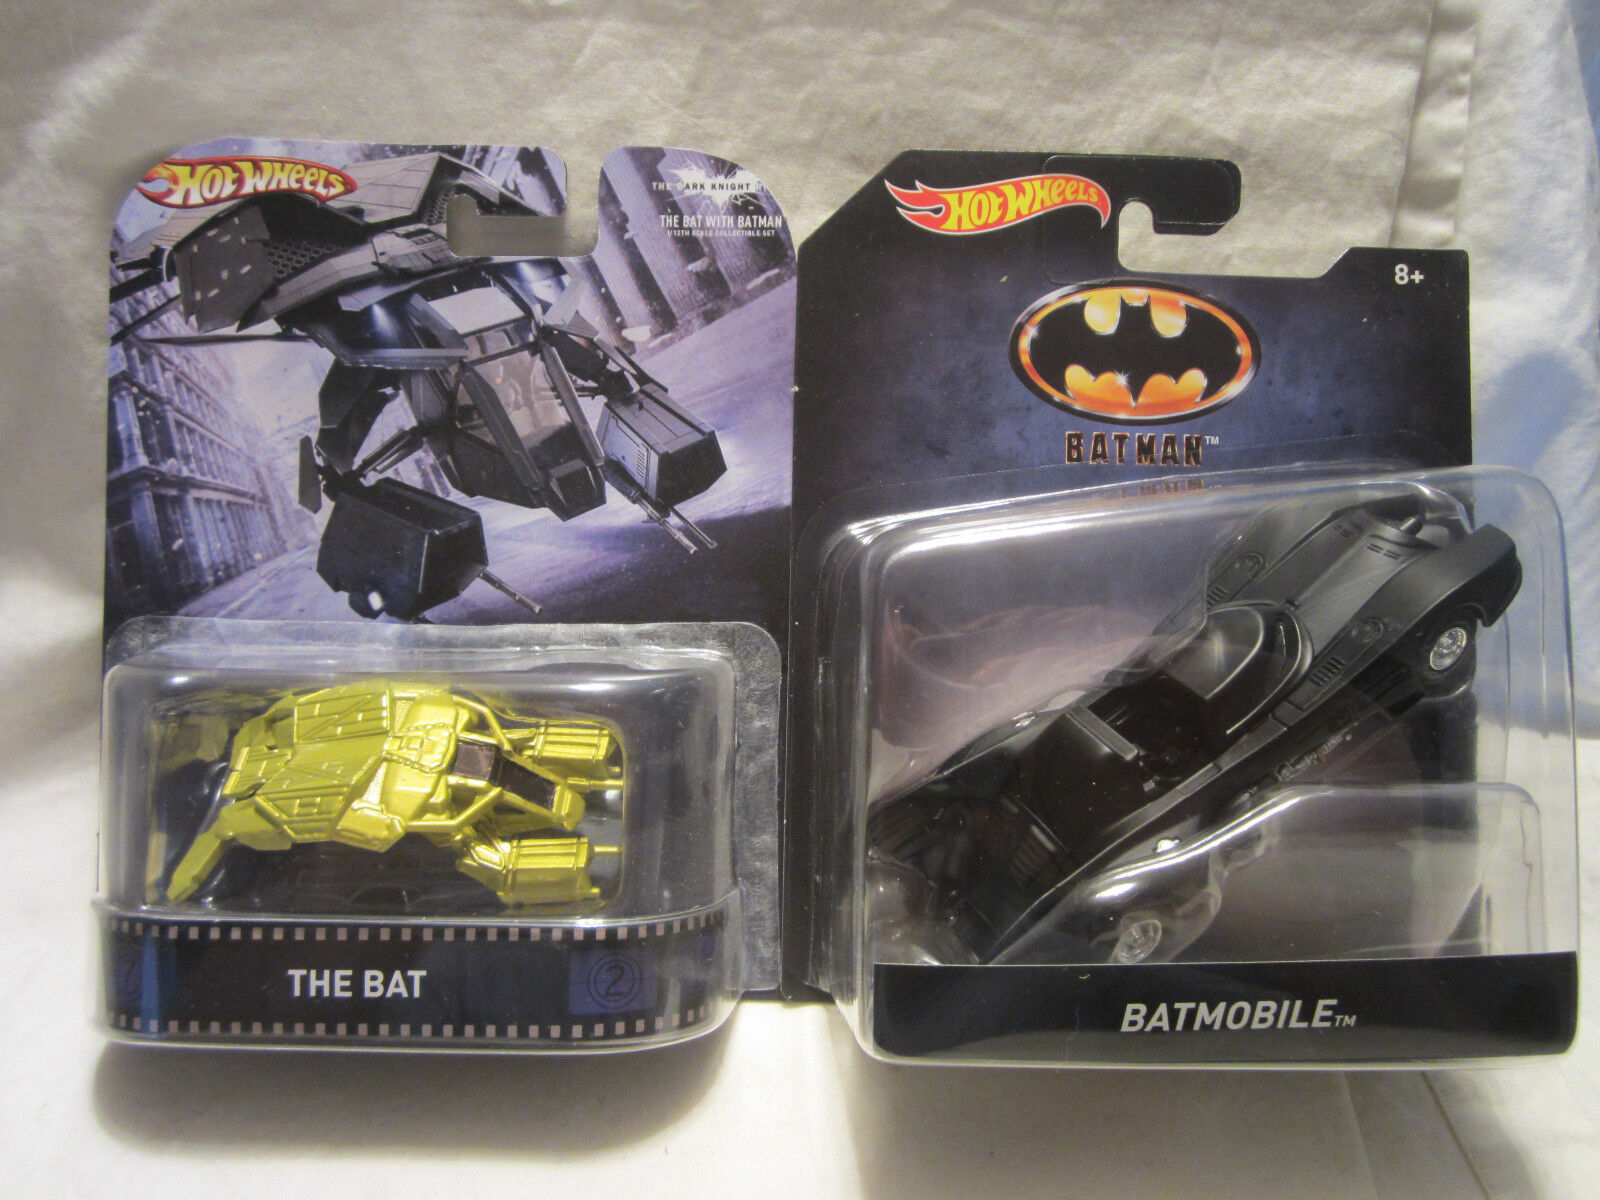 Hot Wheels Personnalisé The Bat Véhicle & Batman Batmobile